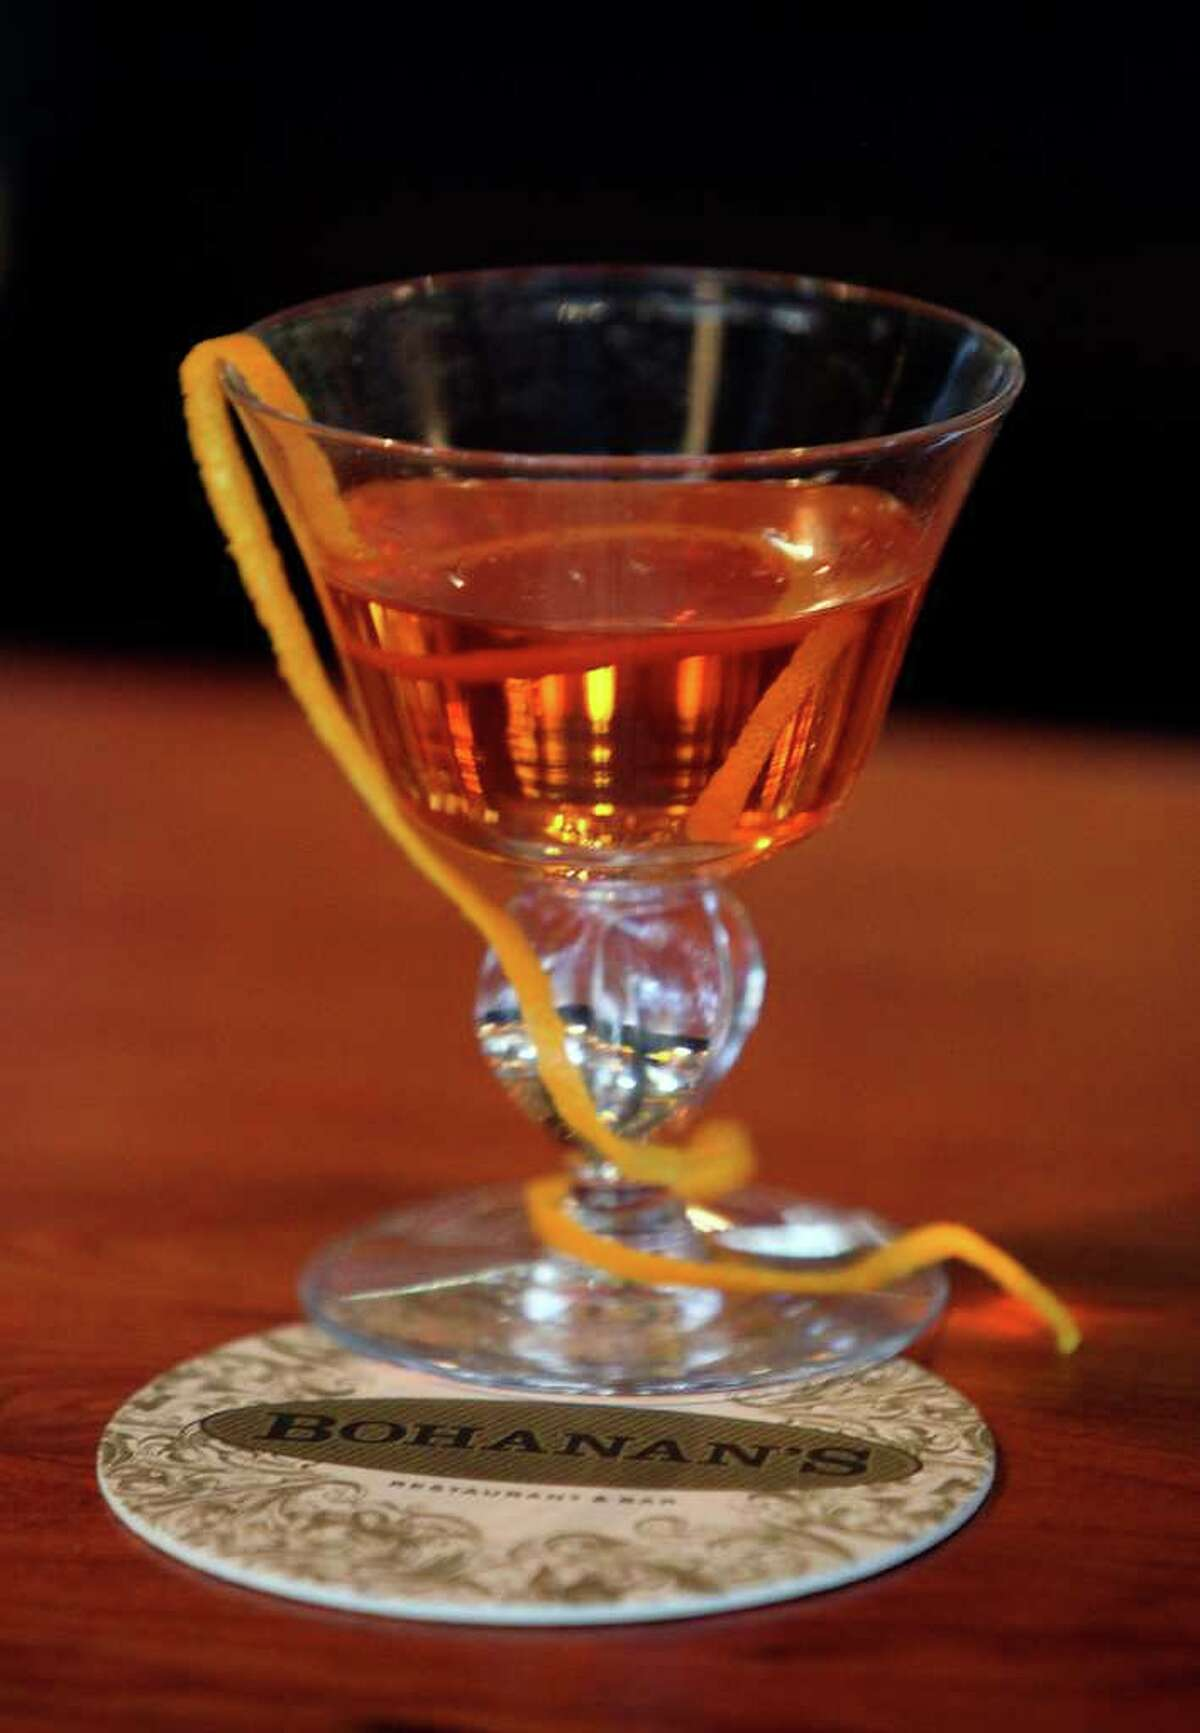 The Bar at Bohanan's staff plans to continue educating enthusiasts about classic cocktails, such as the sazerac.